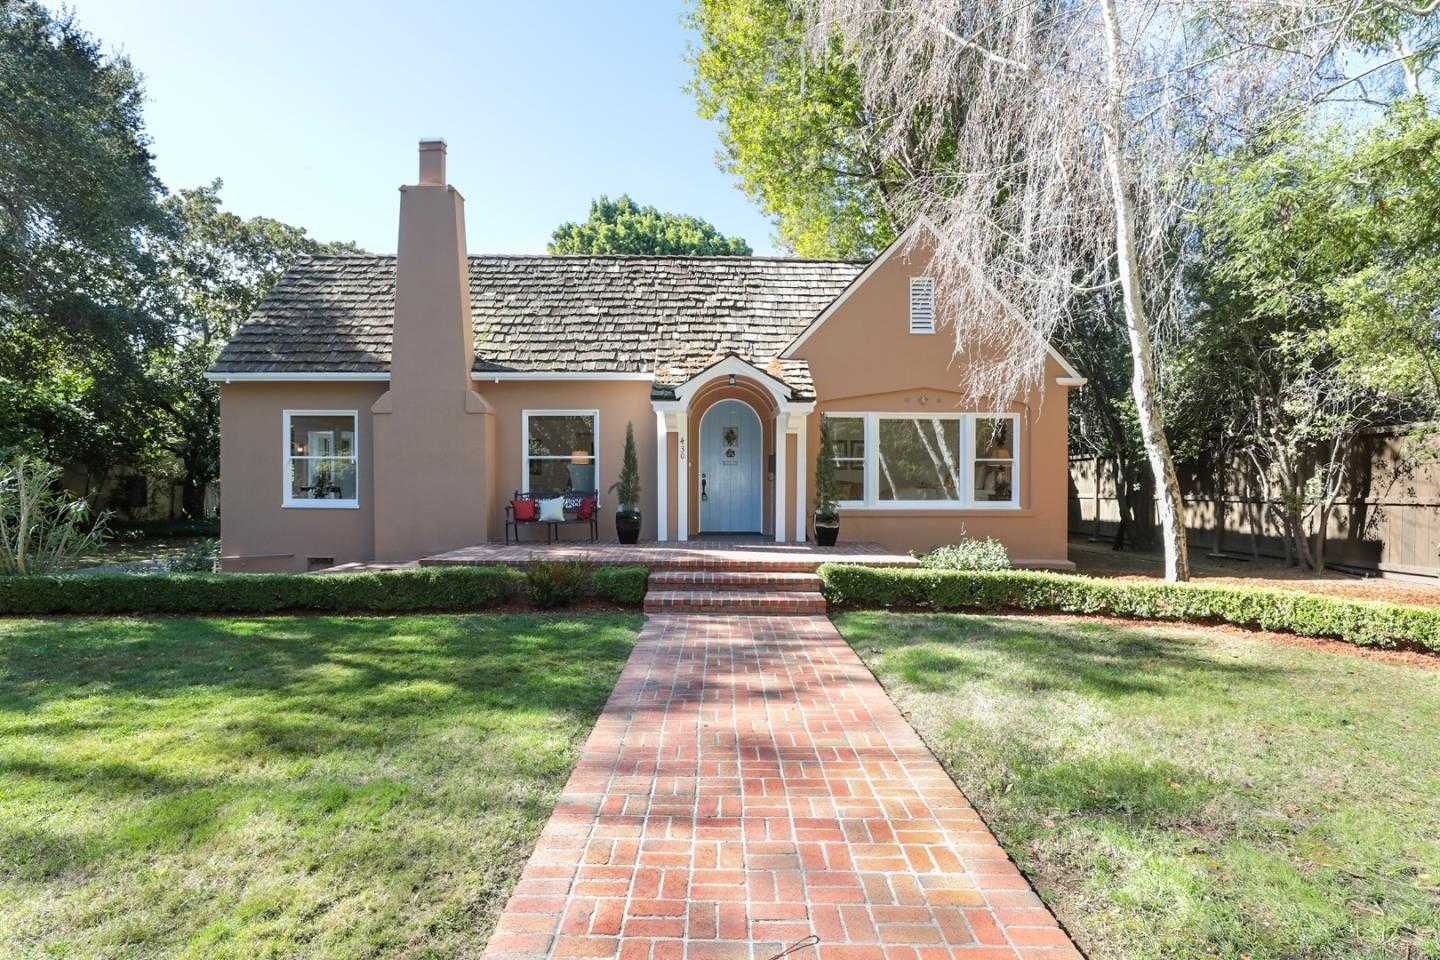 $5,998,000 - 3Br/2Ba -  for Sale in Palo Alto